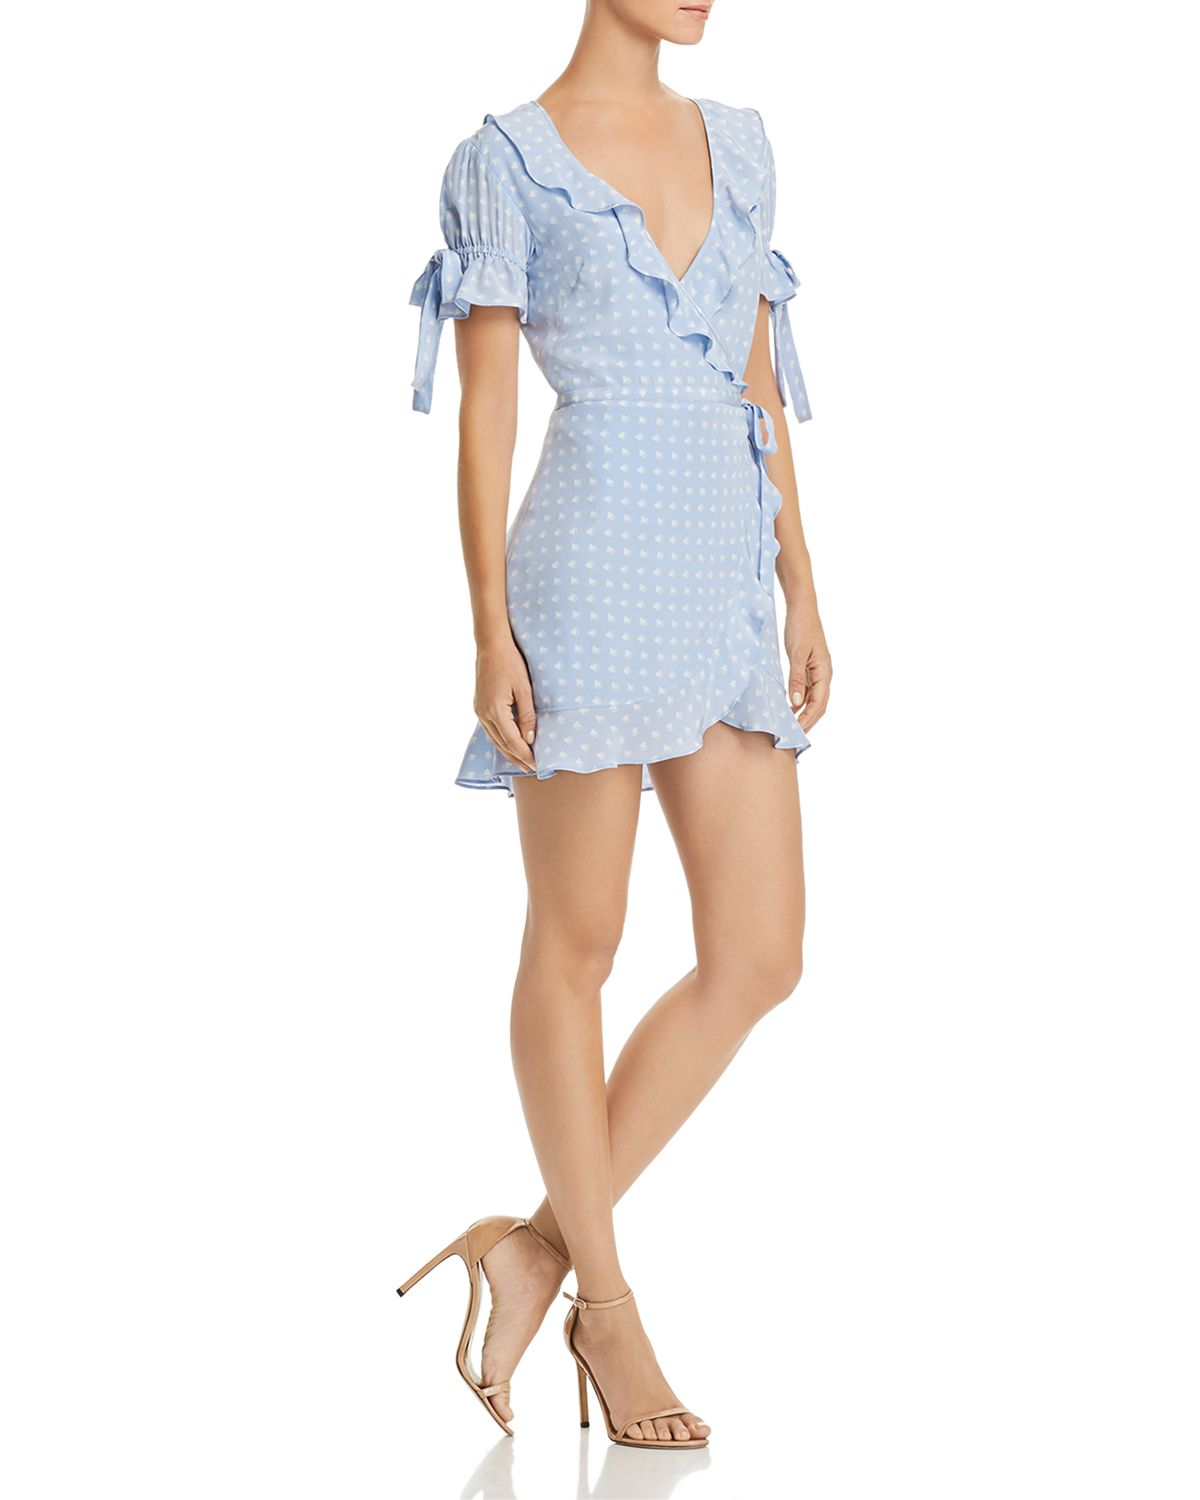 Sweetheart Mini Wrap Dress by For Love & Lemons